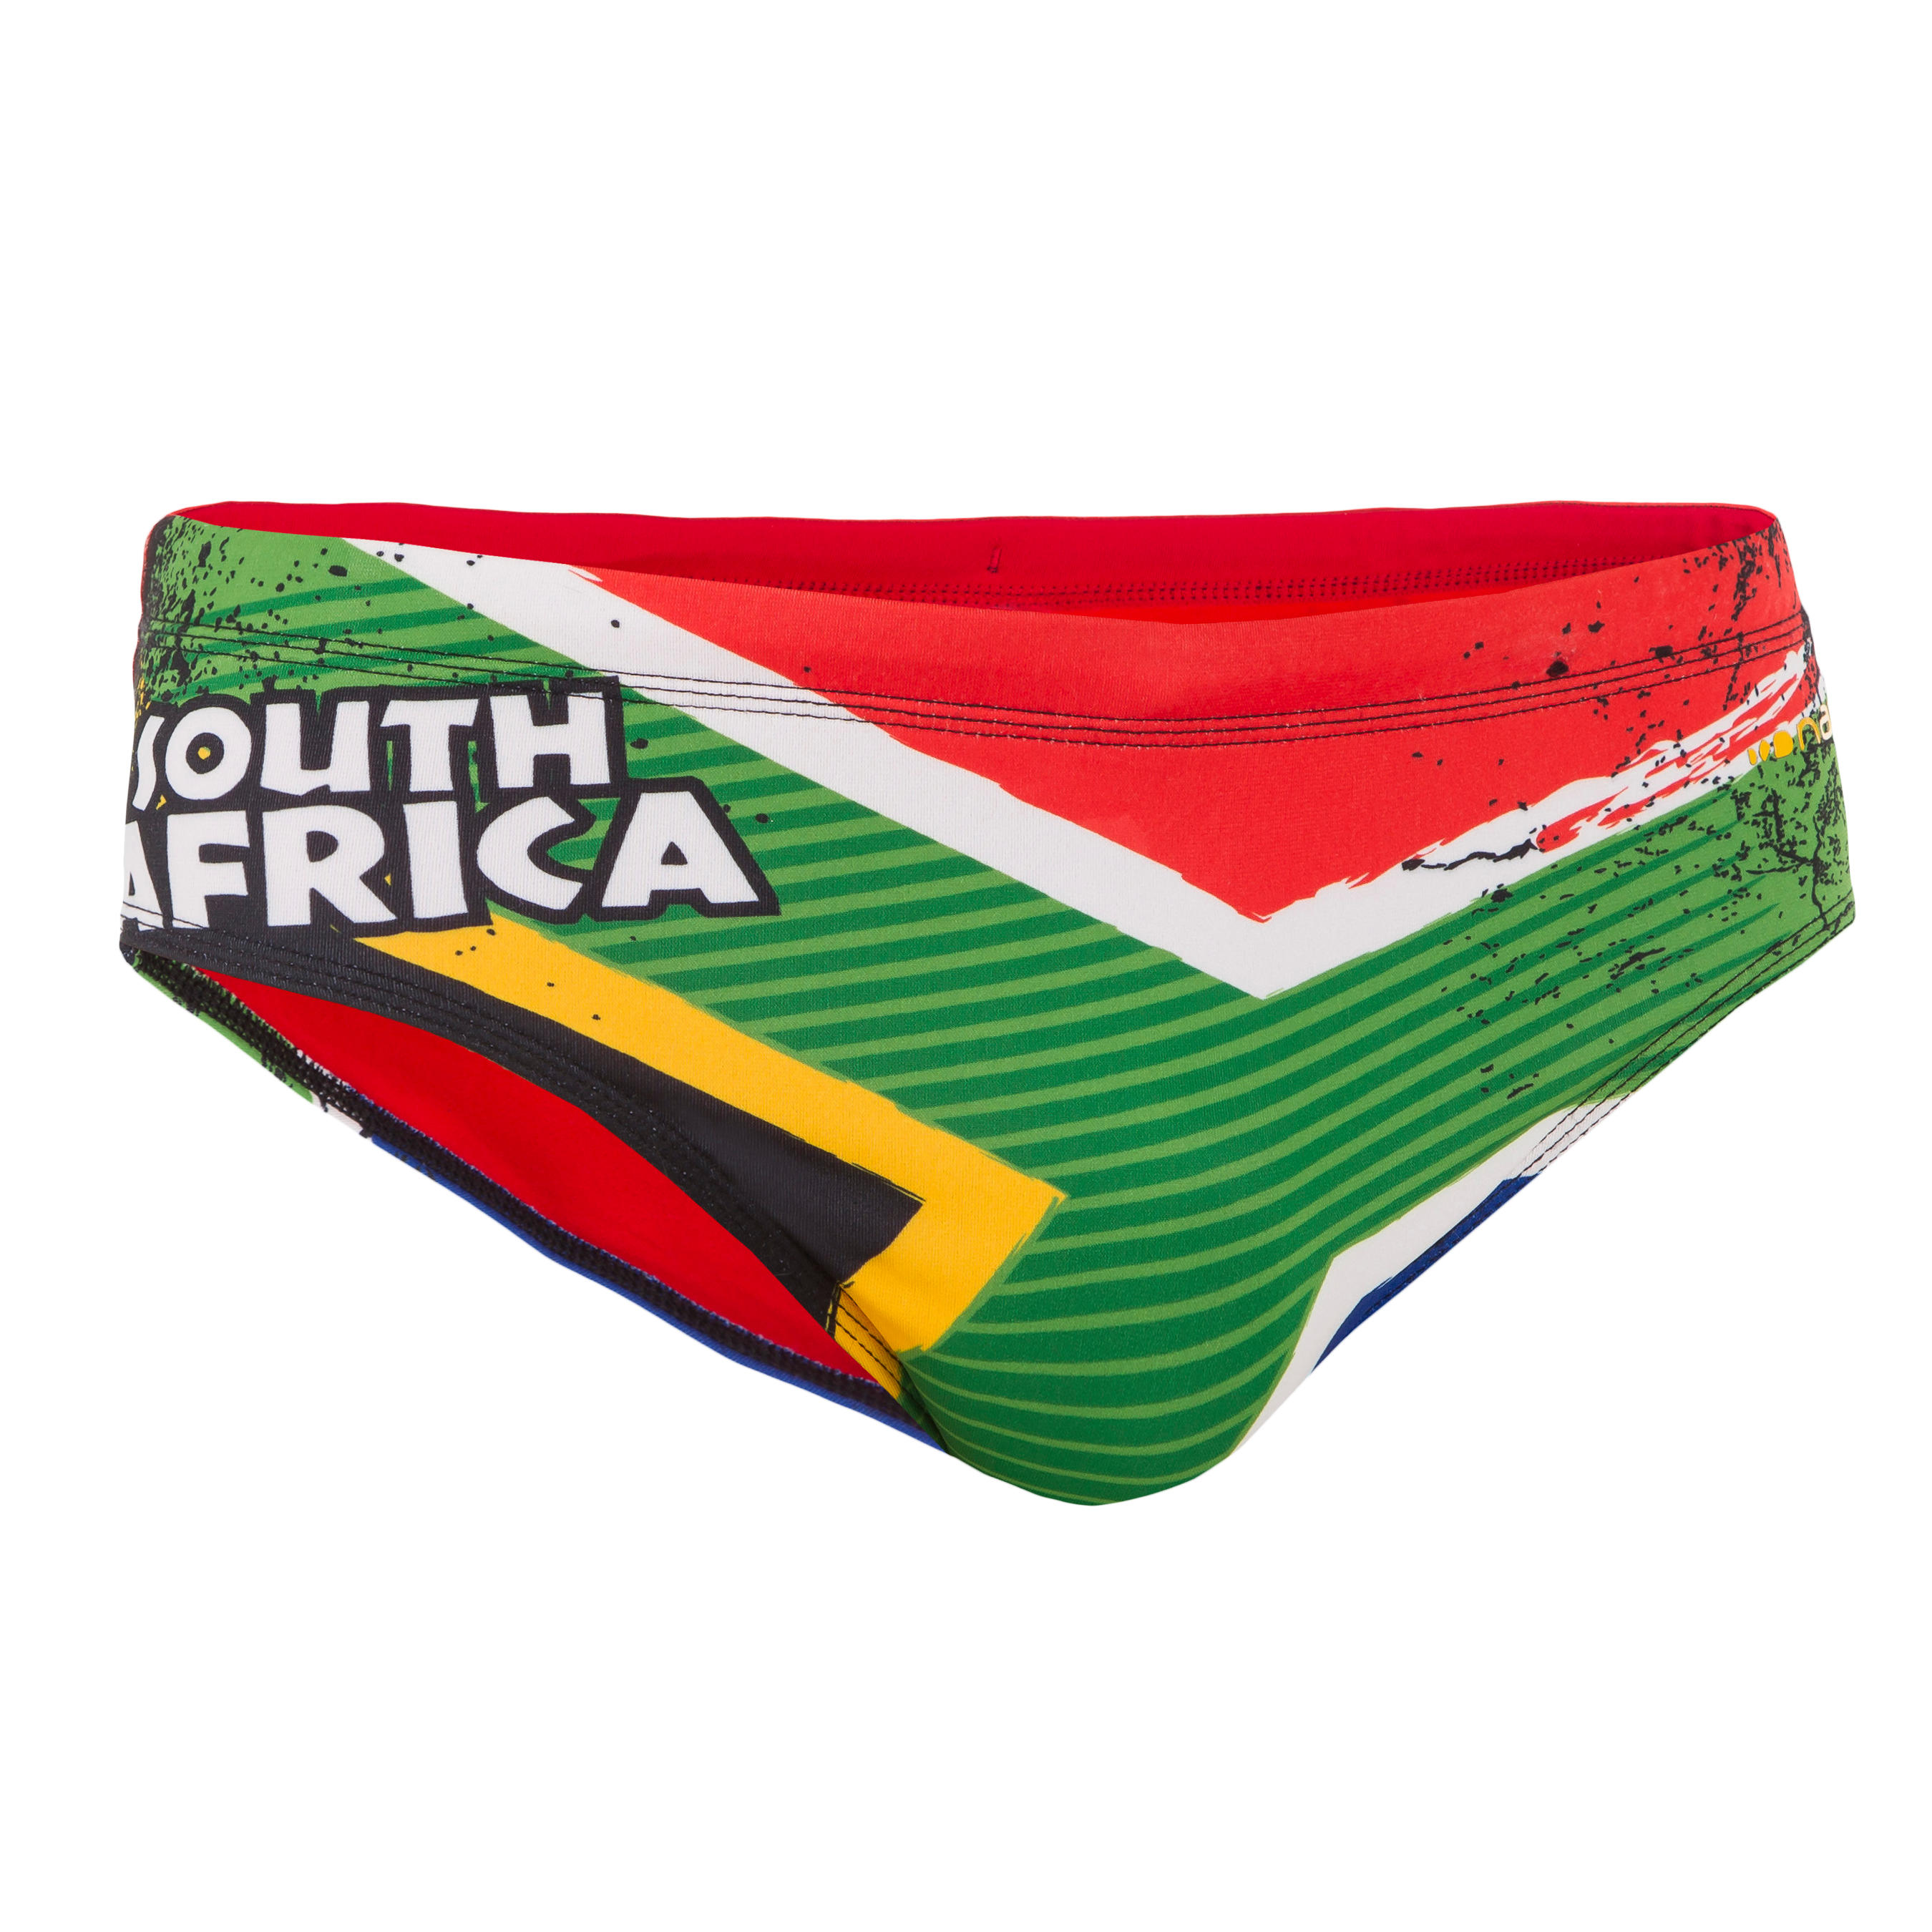 900 SOUTH AFRICA...